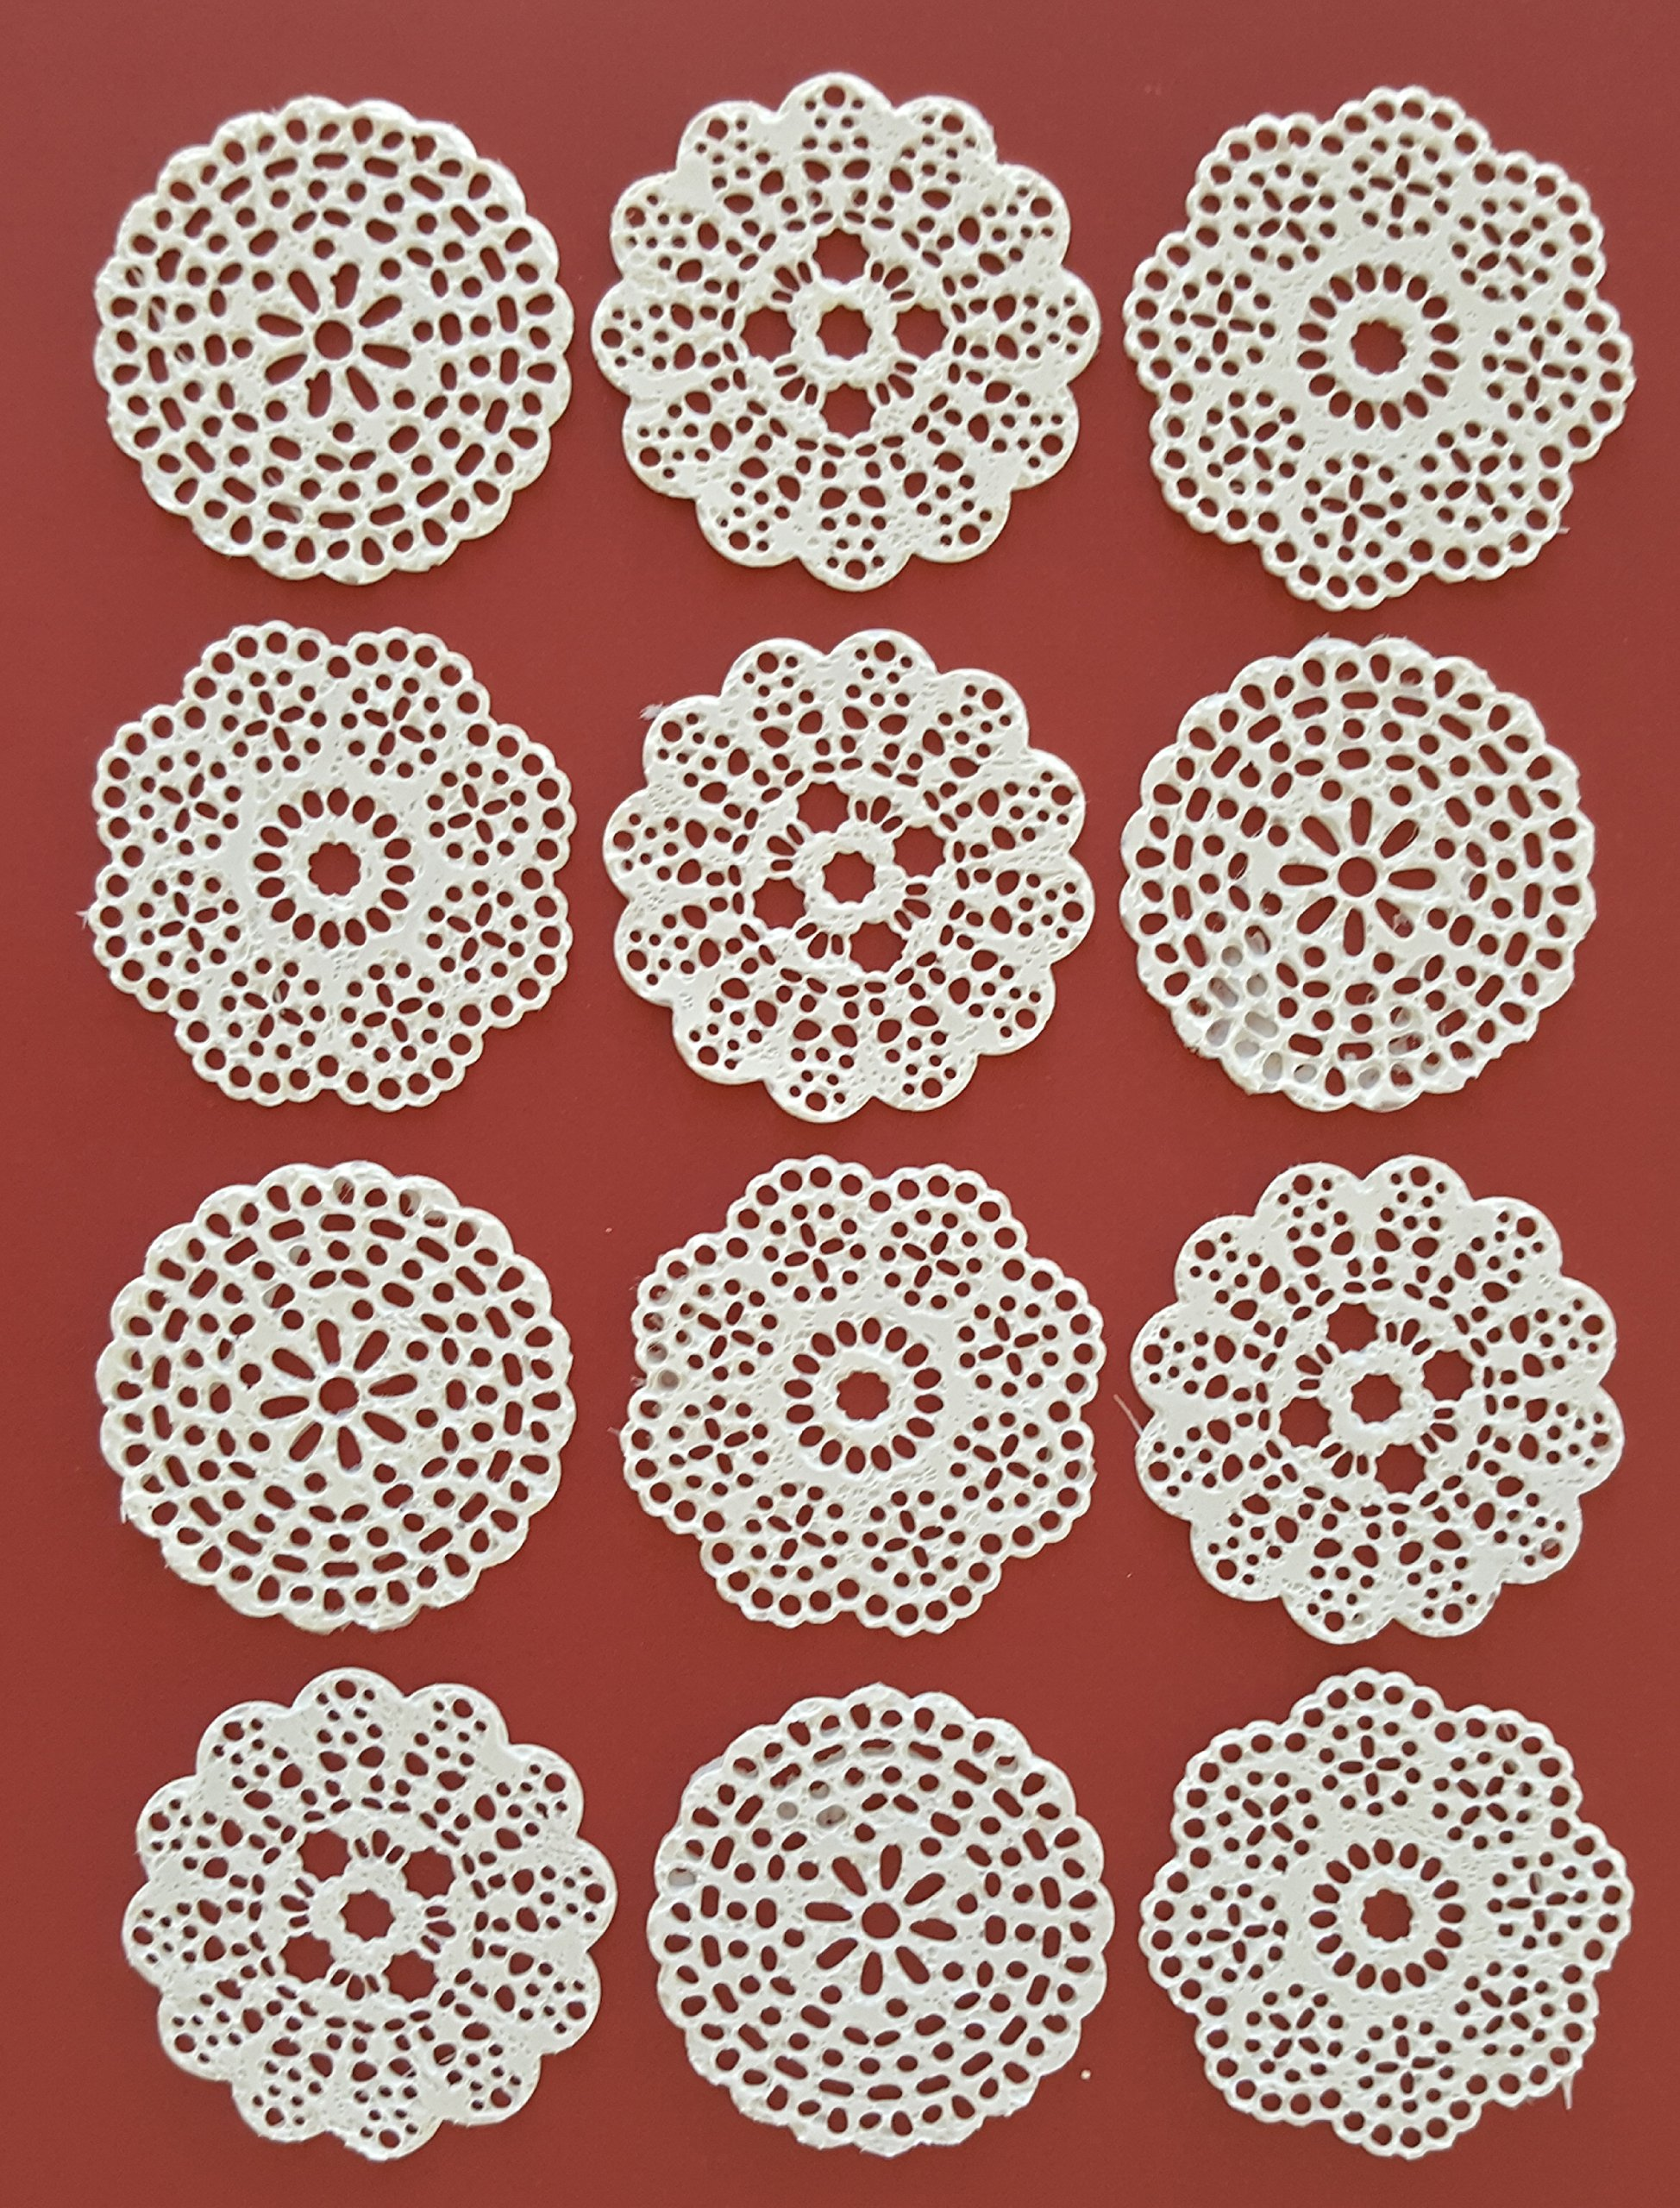 24 PC Edible Lace White Vanilla 3 Designs Rosette Medallion Doily Applique Topper - Cupcake, Cake, Cookie, Chocolate, Coffee, Tea, or any Dessert